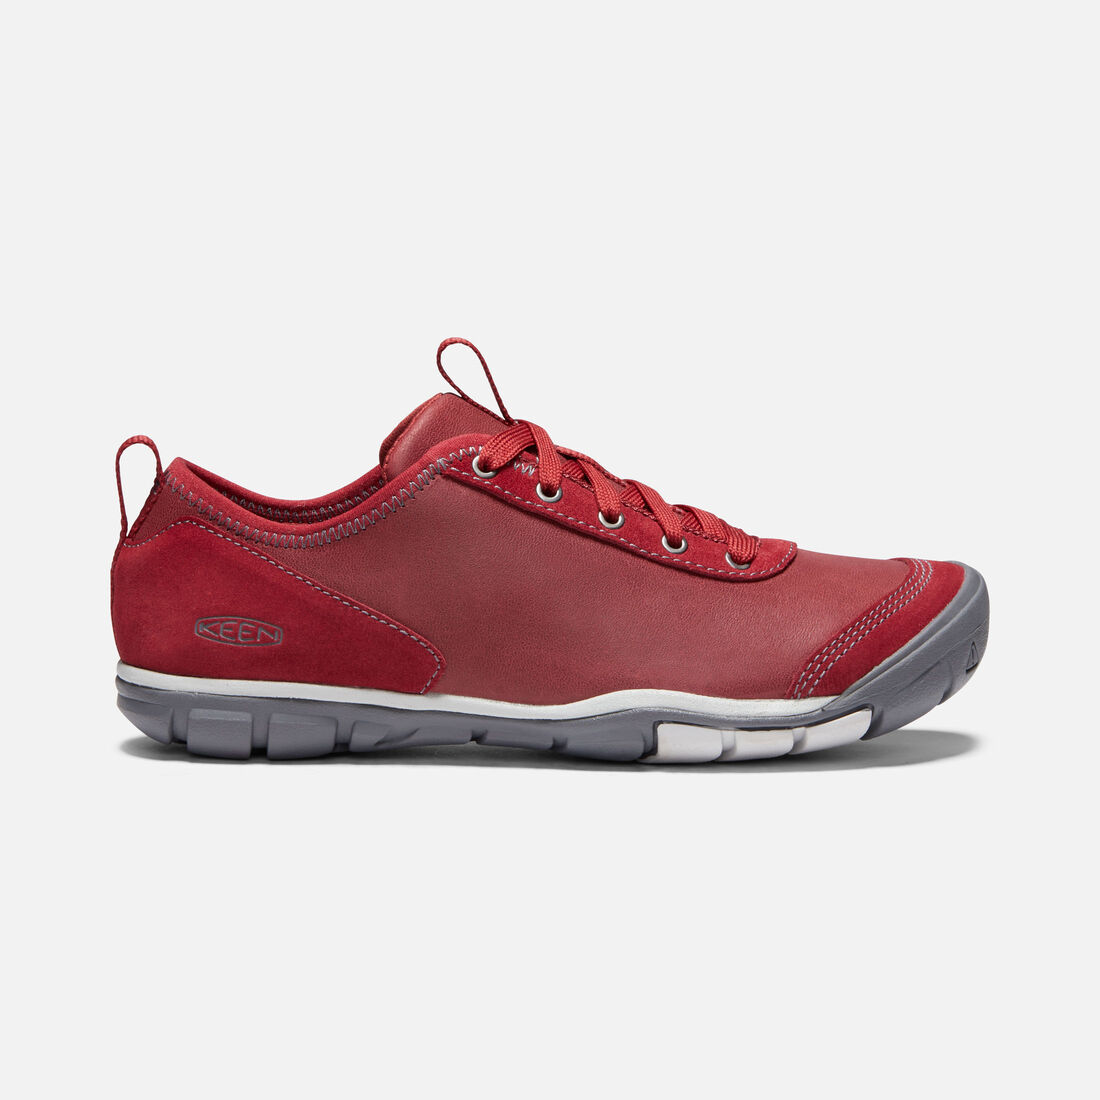 392f410cdfeb Women s Hush Leather CNX in BIKE RED - large view.